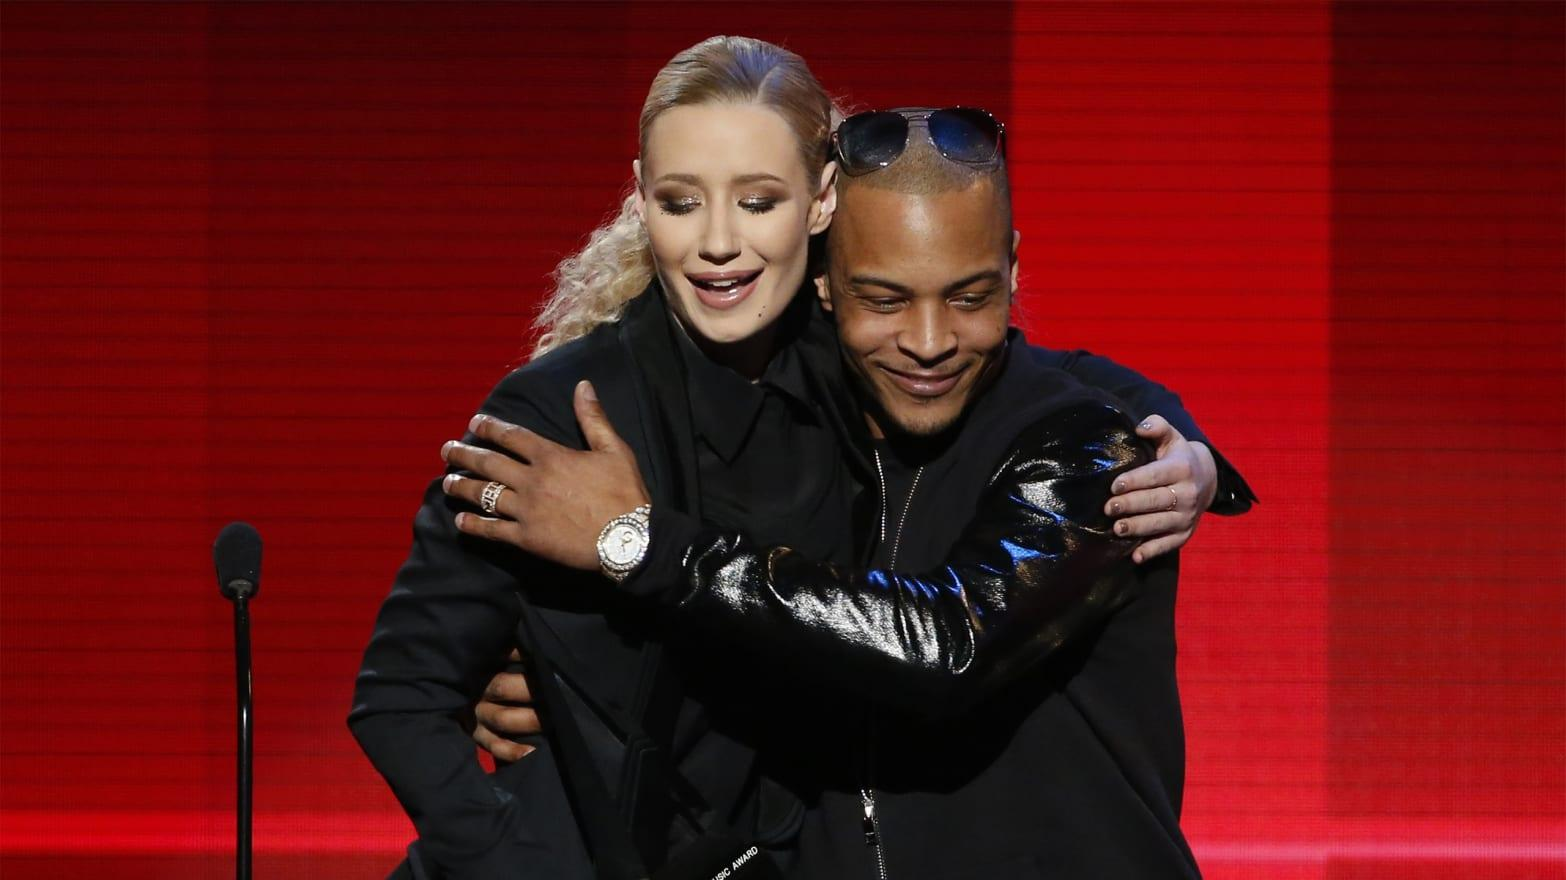 Iggy Azalea Responds To T.I. After He Tried To Undo The Career Mistake Of Signing Her